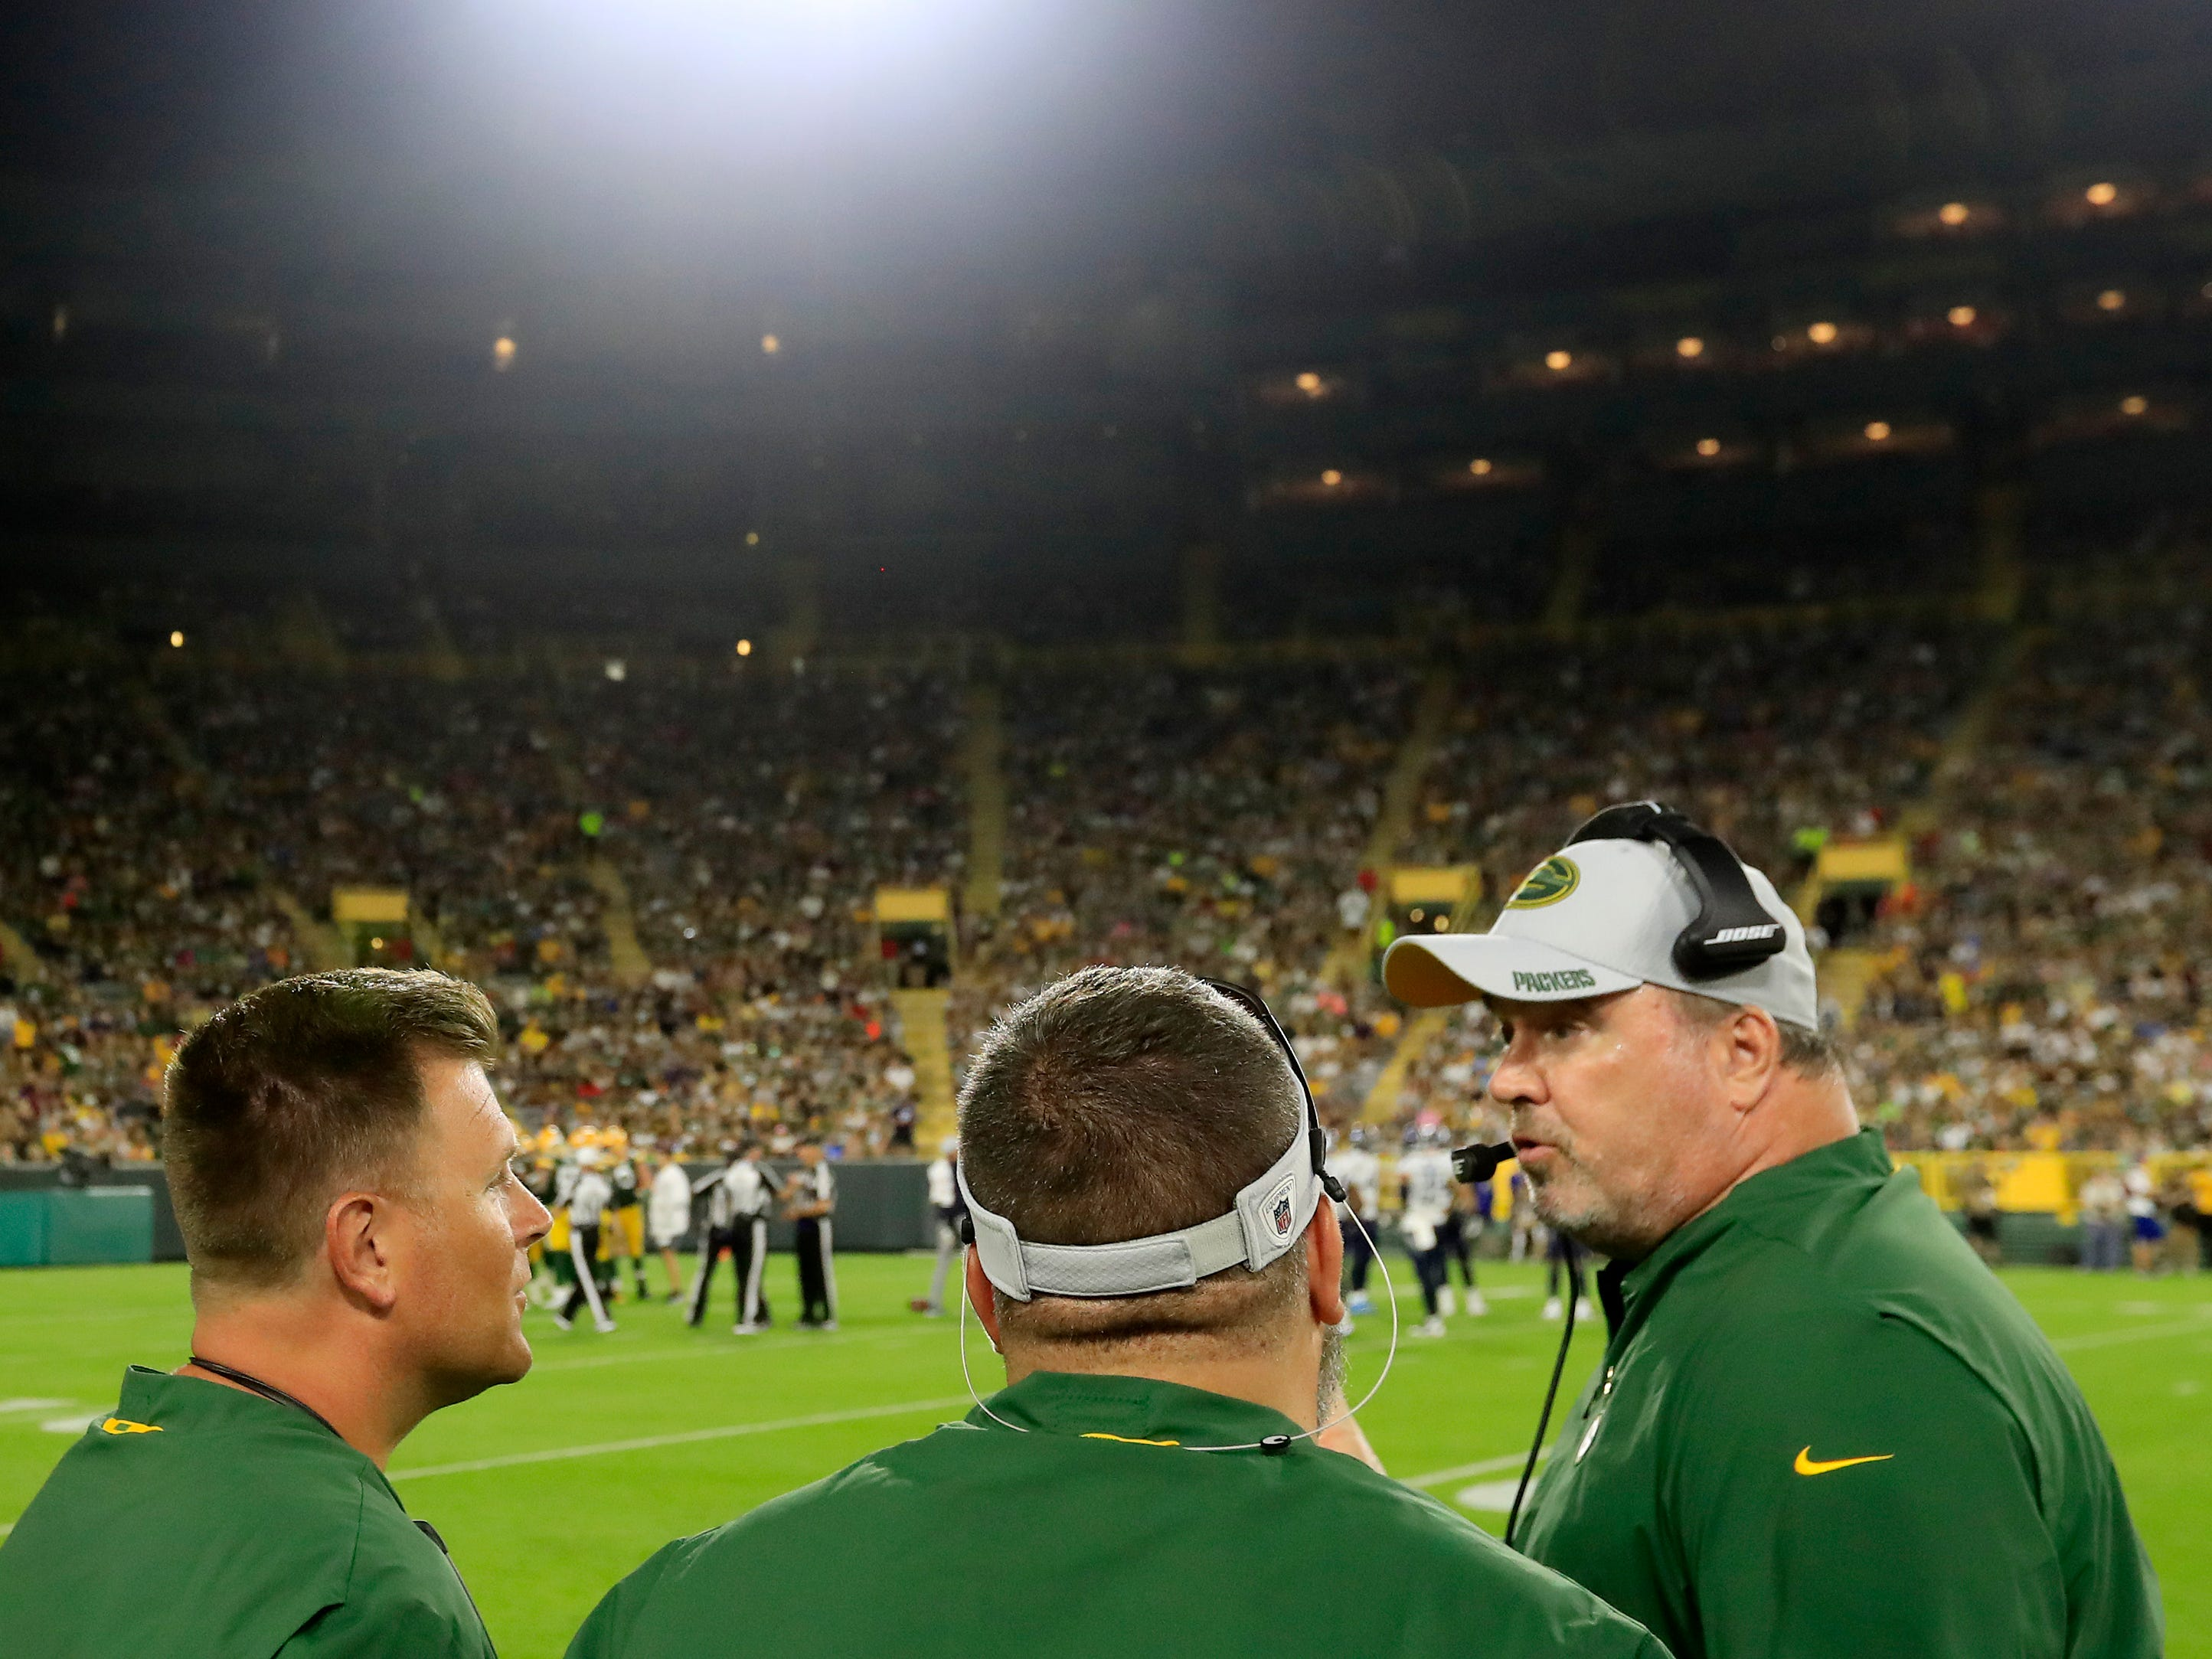 Green Bay Packers head coach Mike McCarthy talks with GM Brian Gutekunst during an NFL preseason game at Lambeau Field on Thursday, August 9, 2018 in Green Bay, Wis.